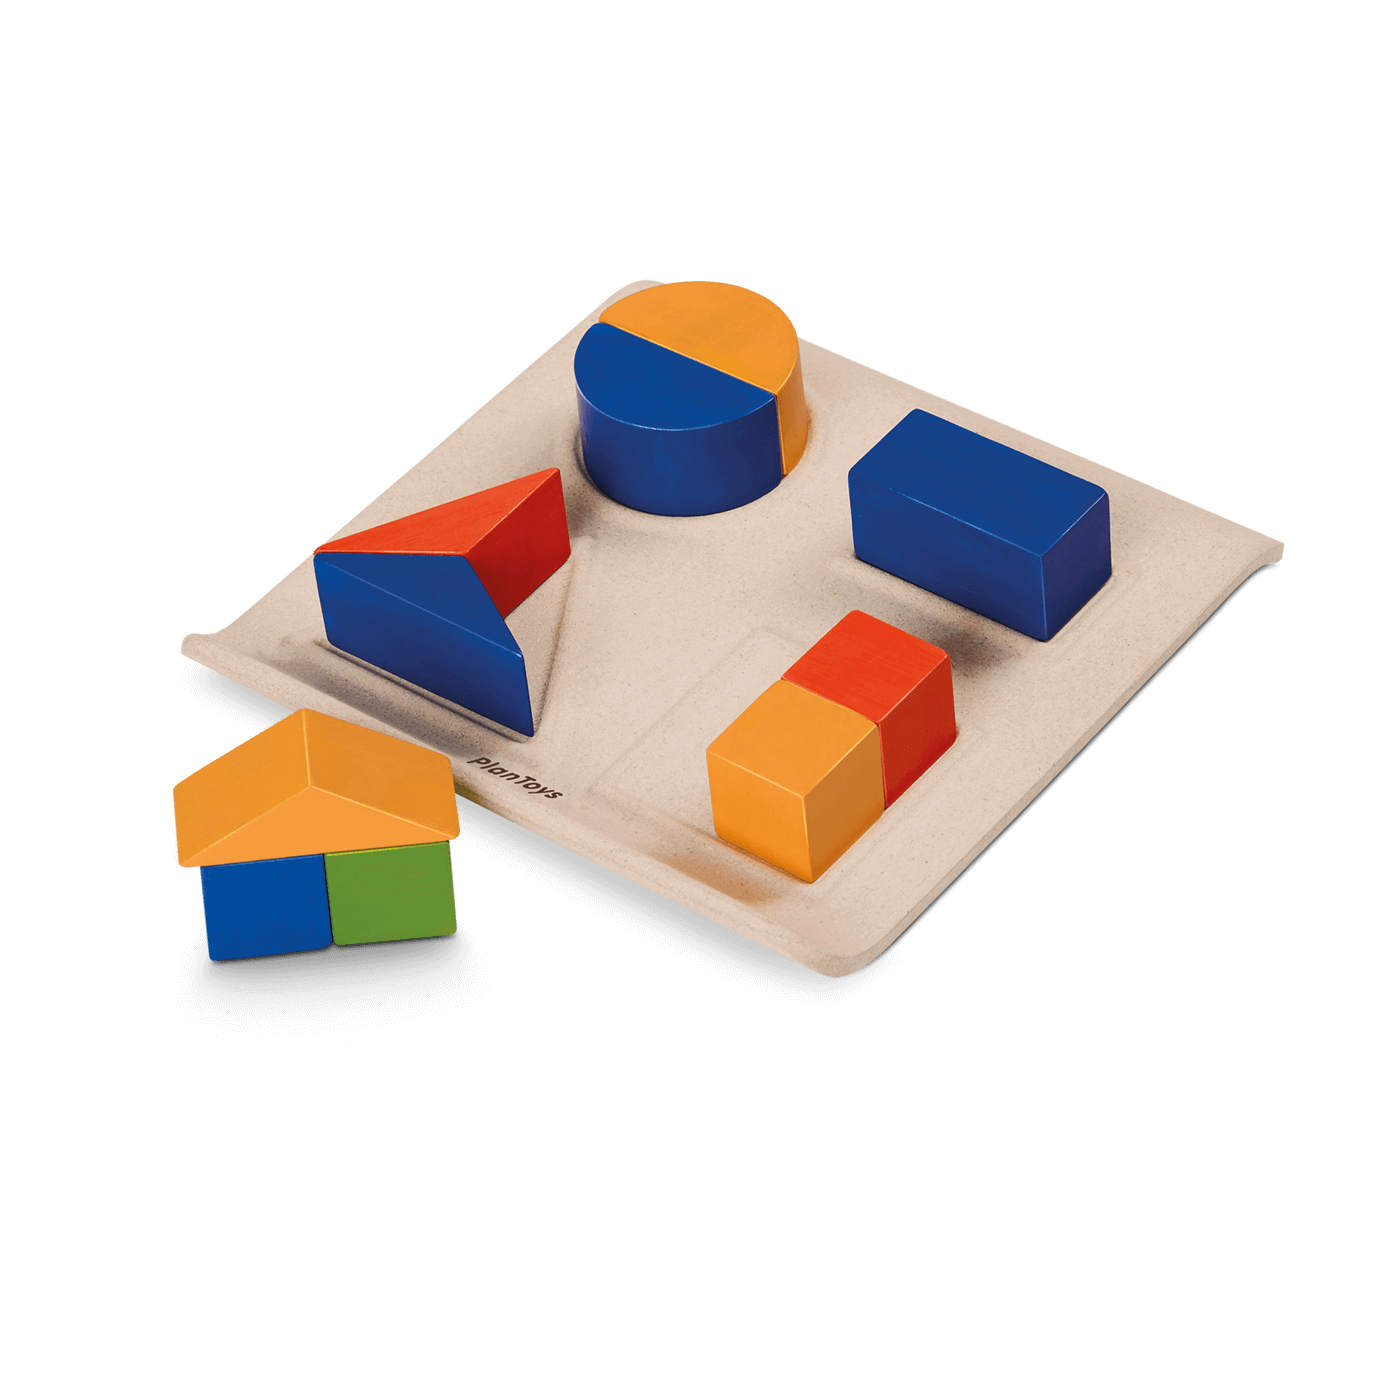 5648_PlanToys_FRACTION_FUN_Blocks_and_Construction_Mathematical_Fine_Motor_Language_and_Communications_Logical_3yrs_Wooden_toys_Education_toys_Safety_Toys_Non-toxic_0.png